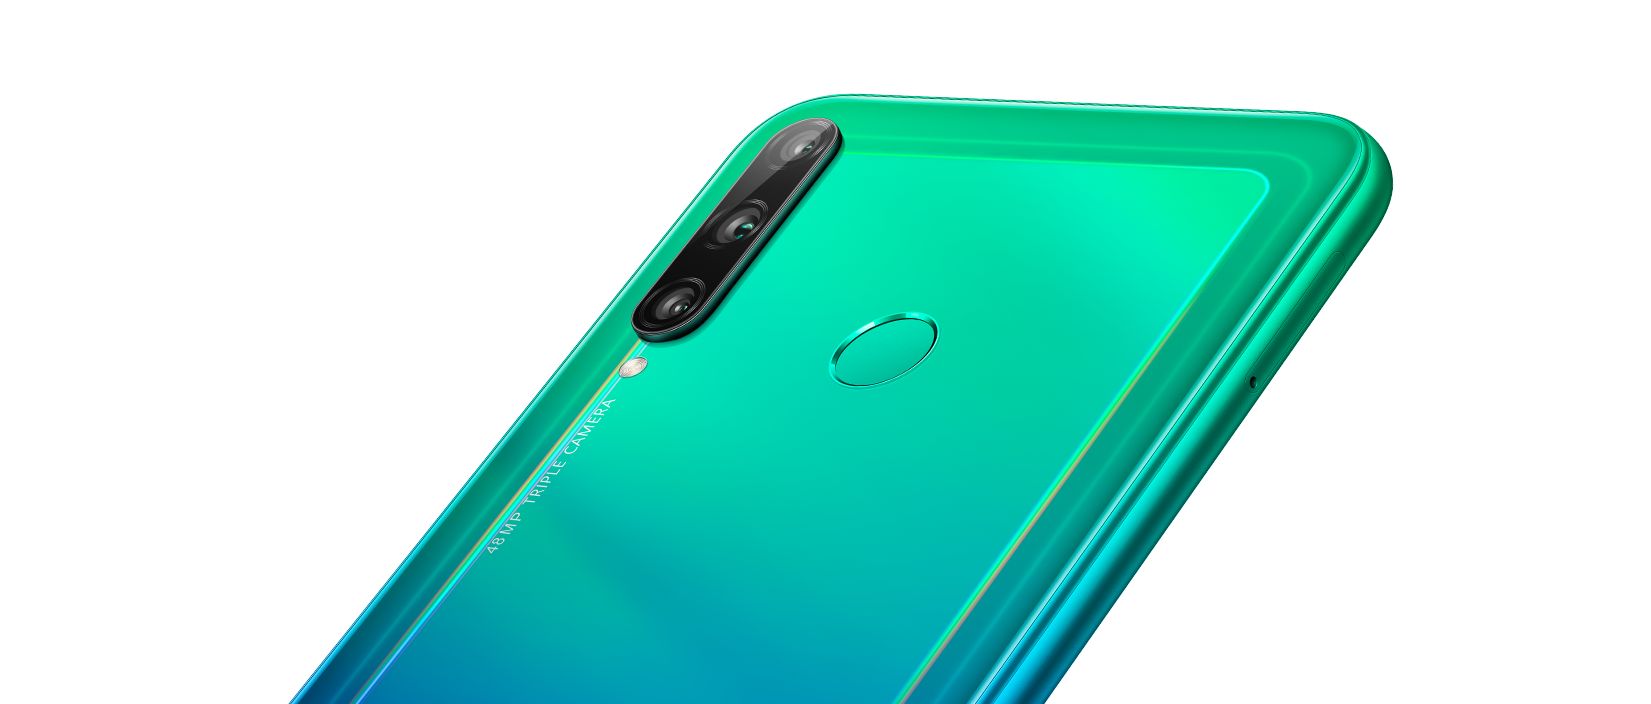 huawei p40 lite e-fingerprint unlock phone